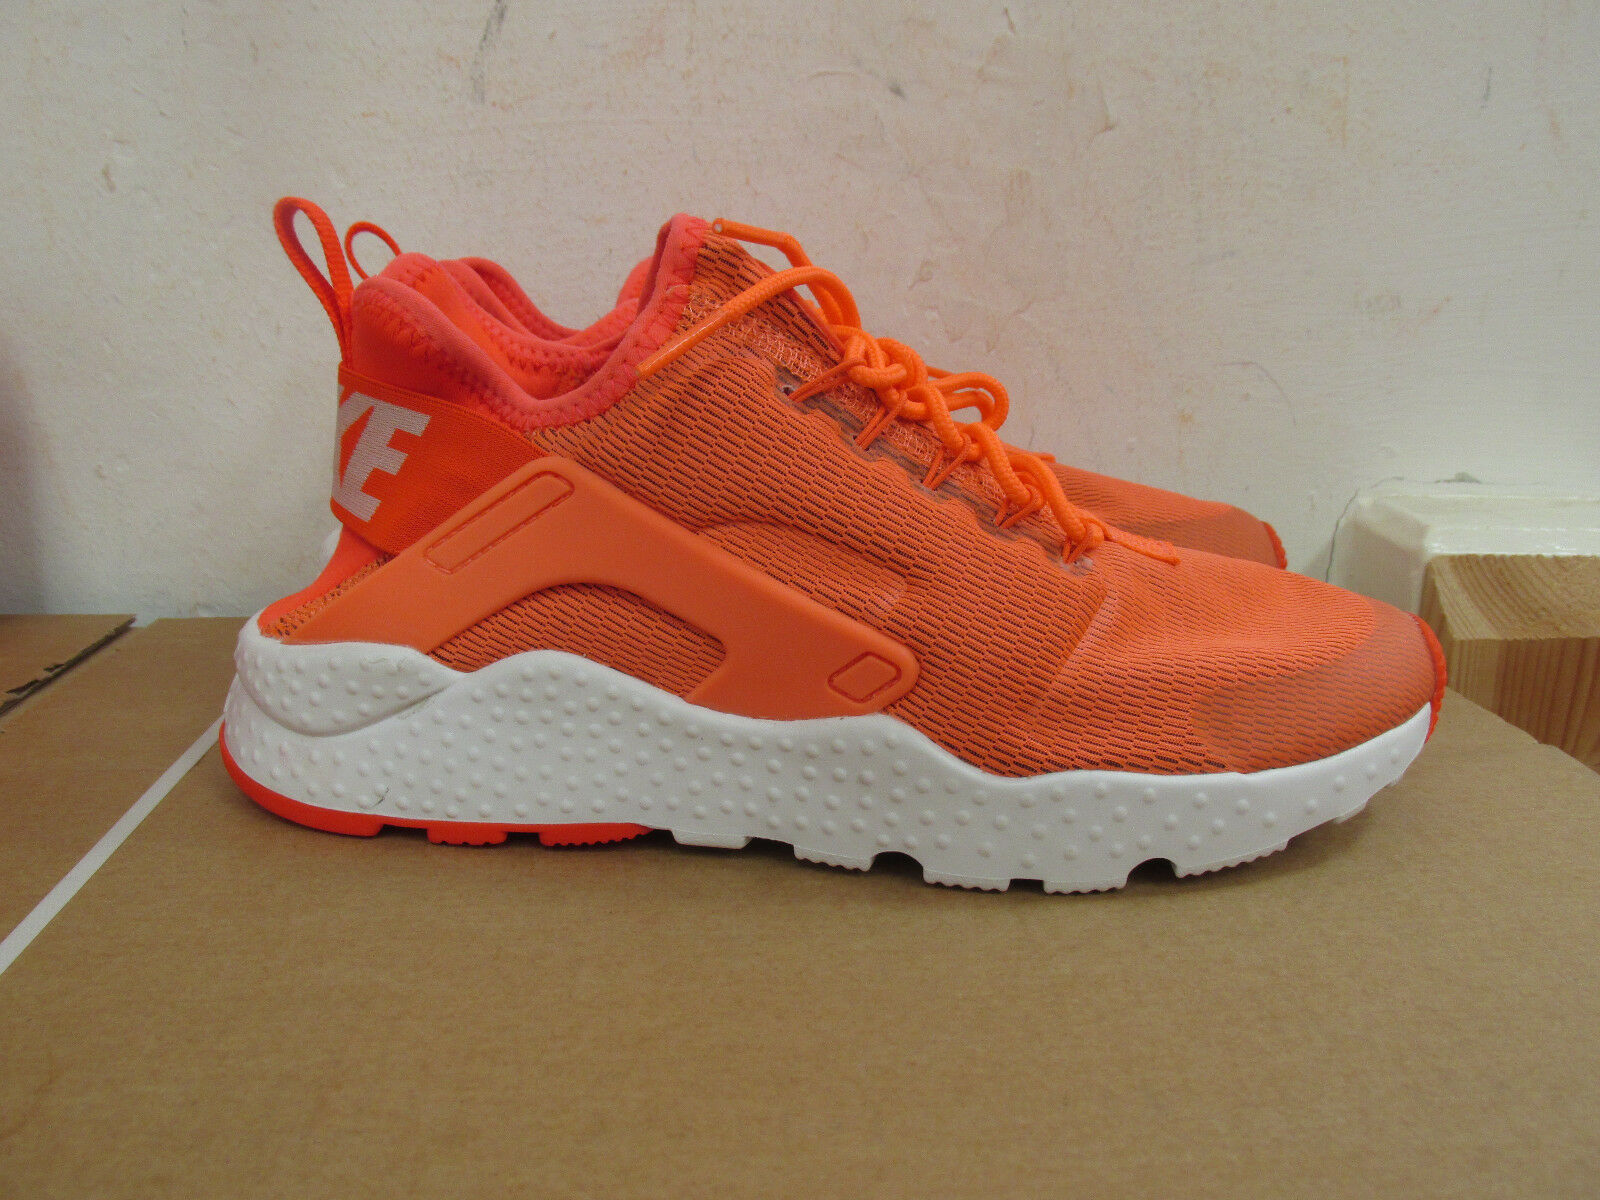 Nike Damen Luft Huarache Run Ultra Turnschuhe Recht UK 5.5 Links UK 6 Odd Größen